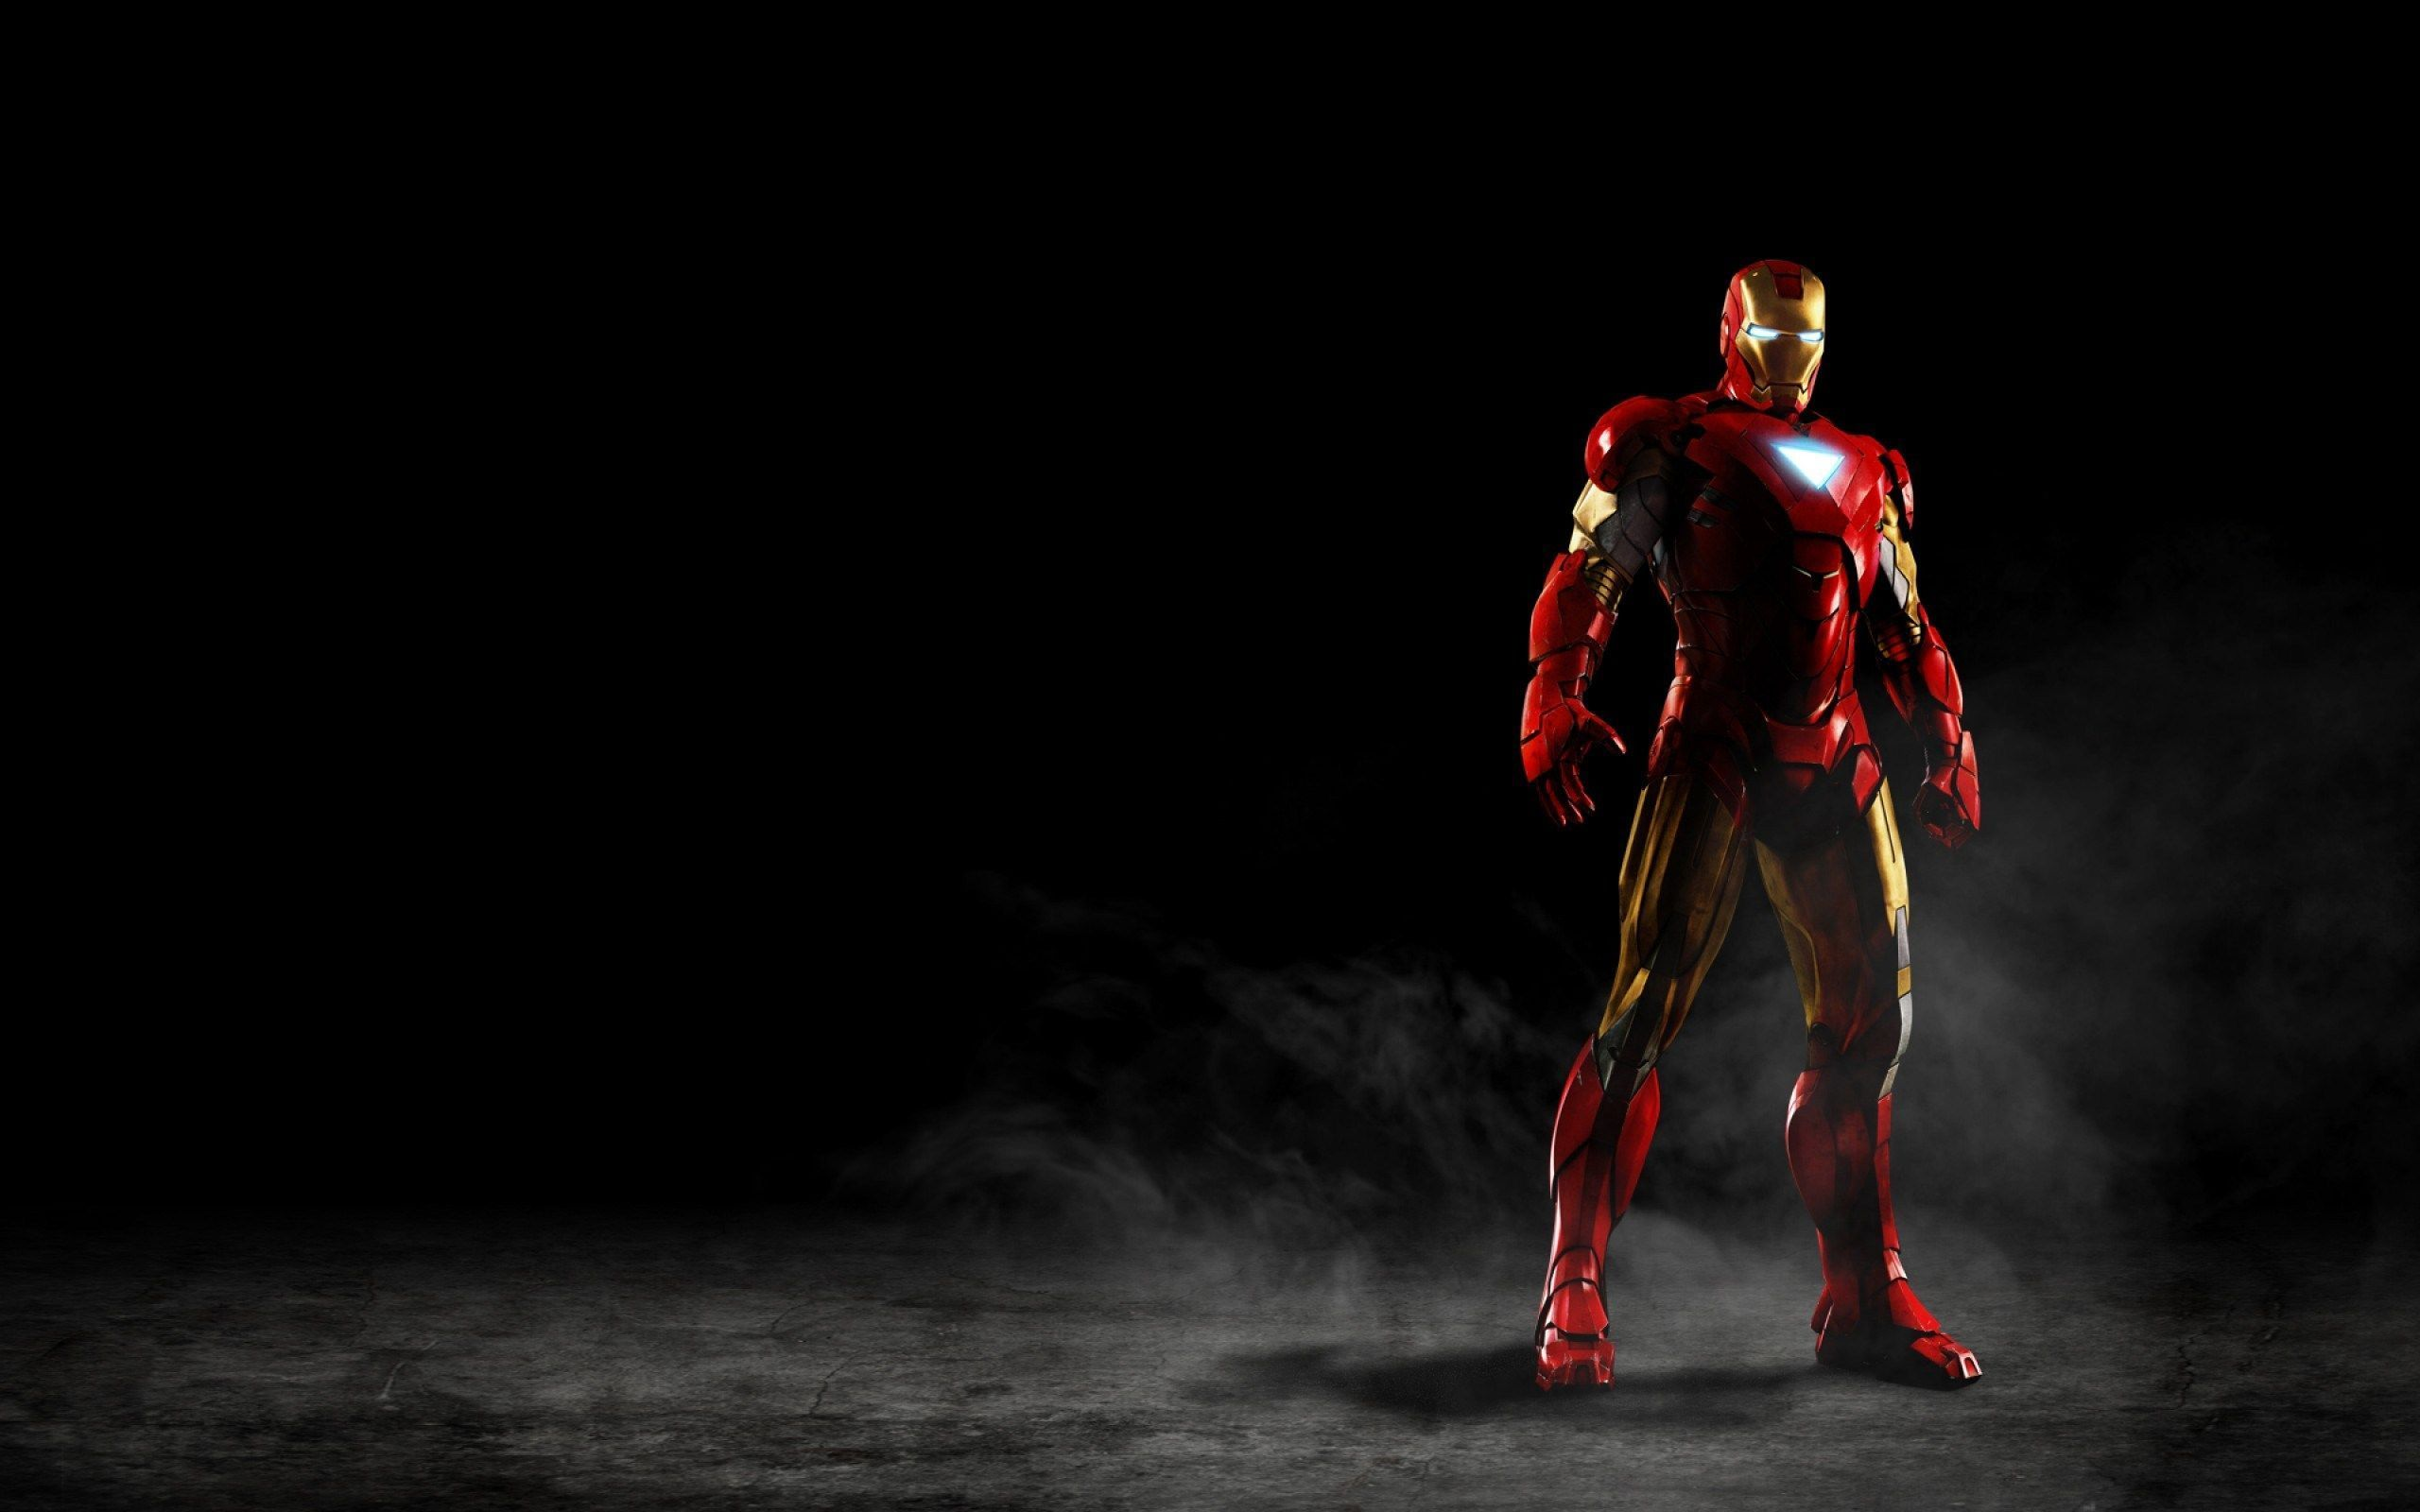 ironman full hd wallpaper - sf wallpaper